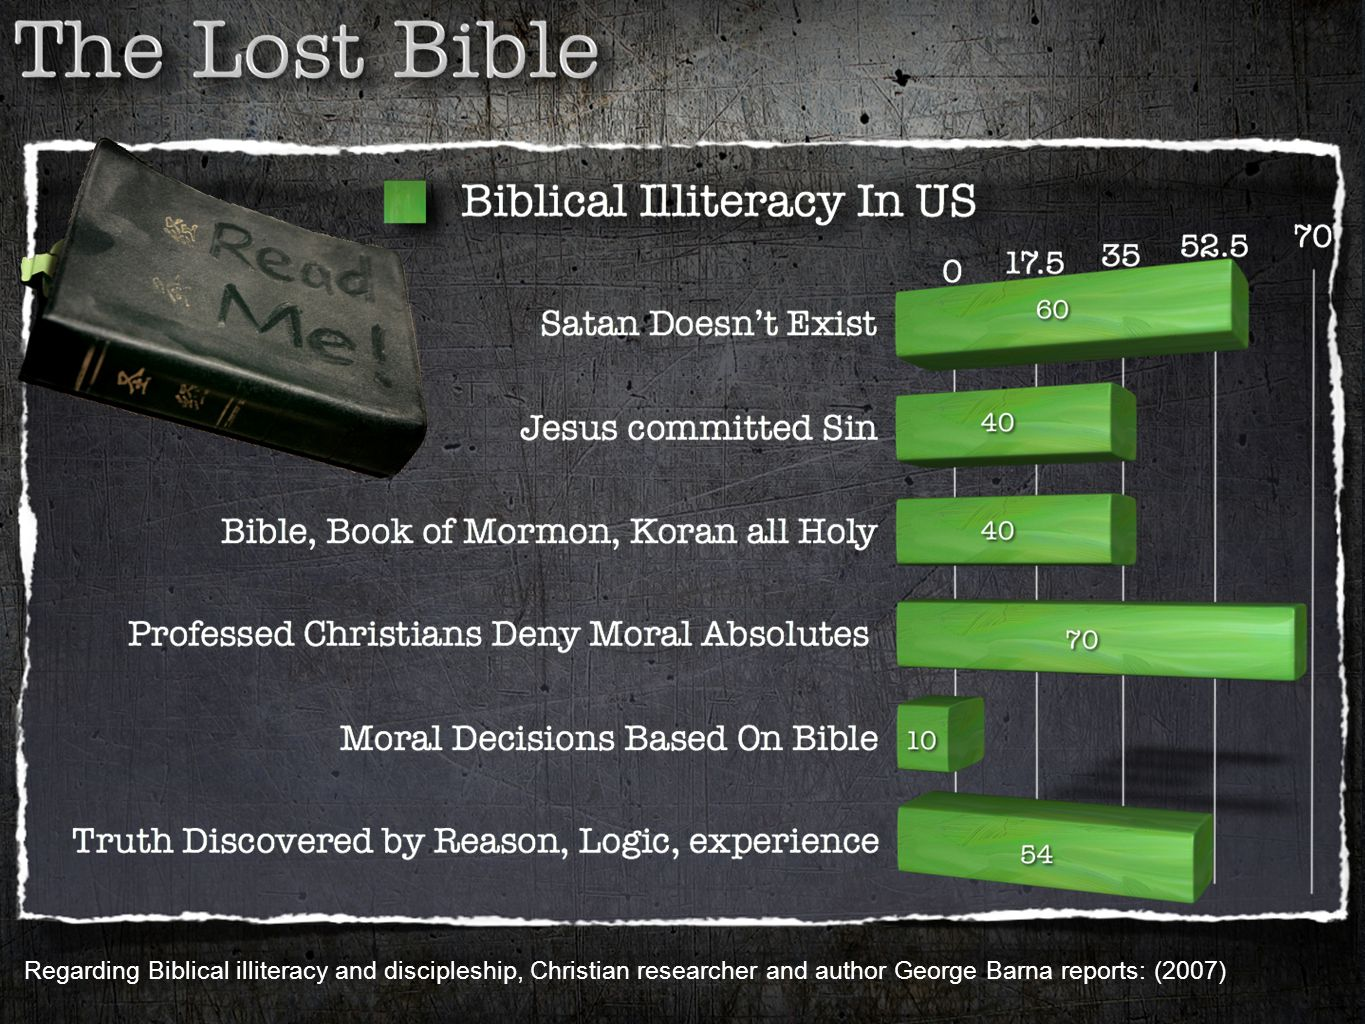 Regarding Biblical illiteracy and discipleship, Christian researcher and author George Barna reports: (2007)